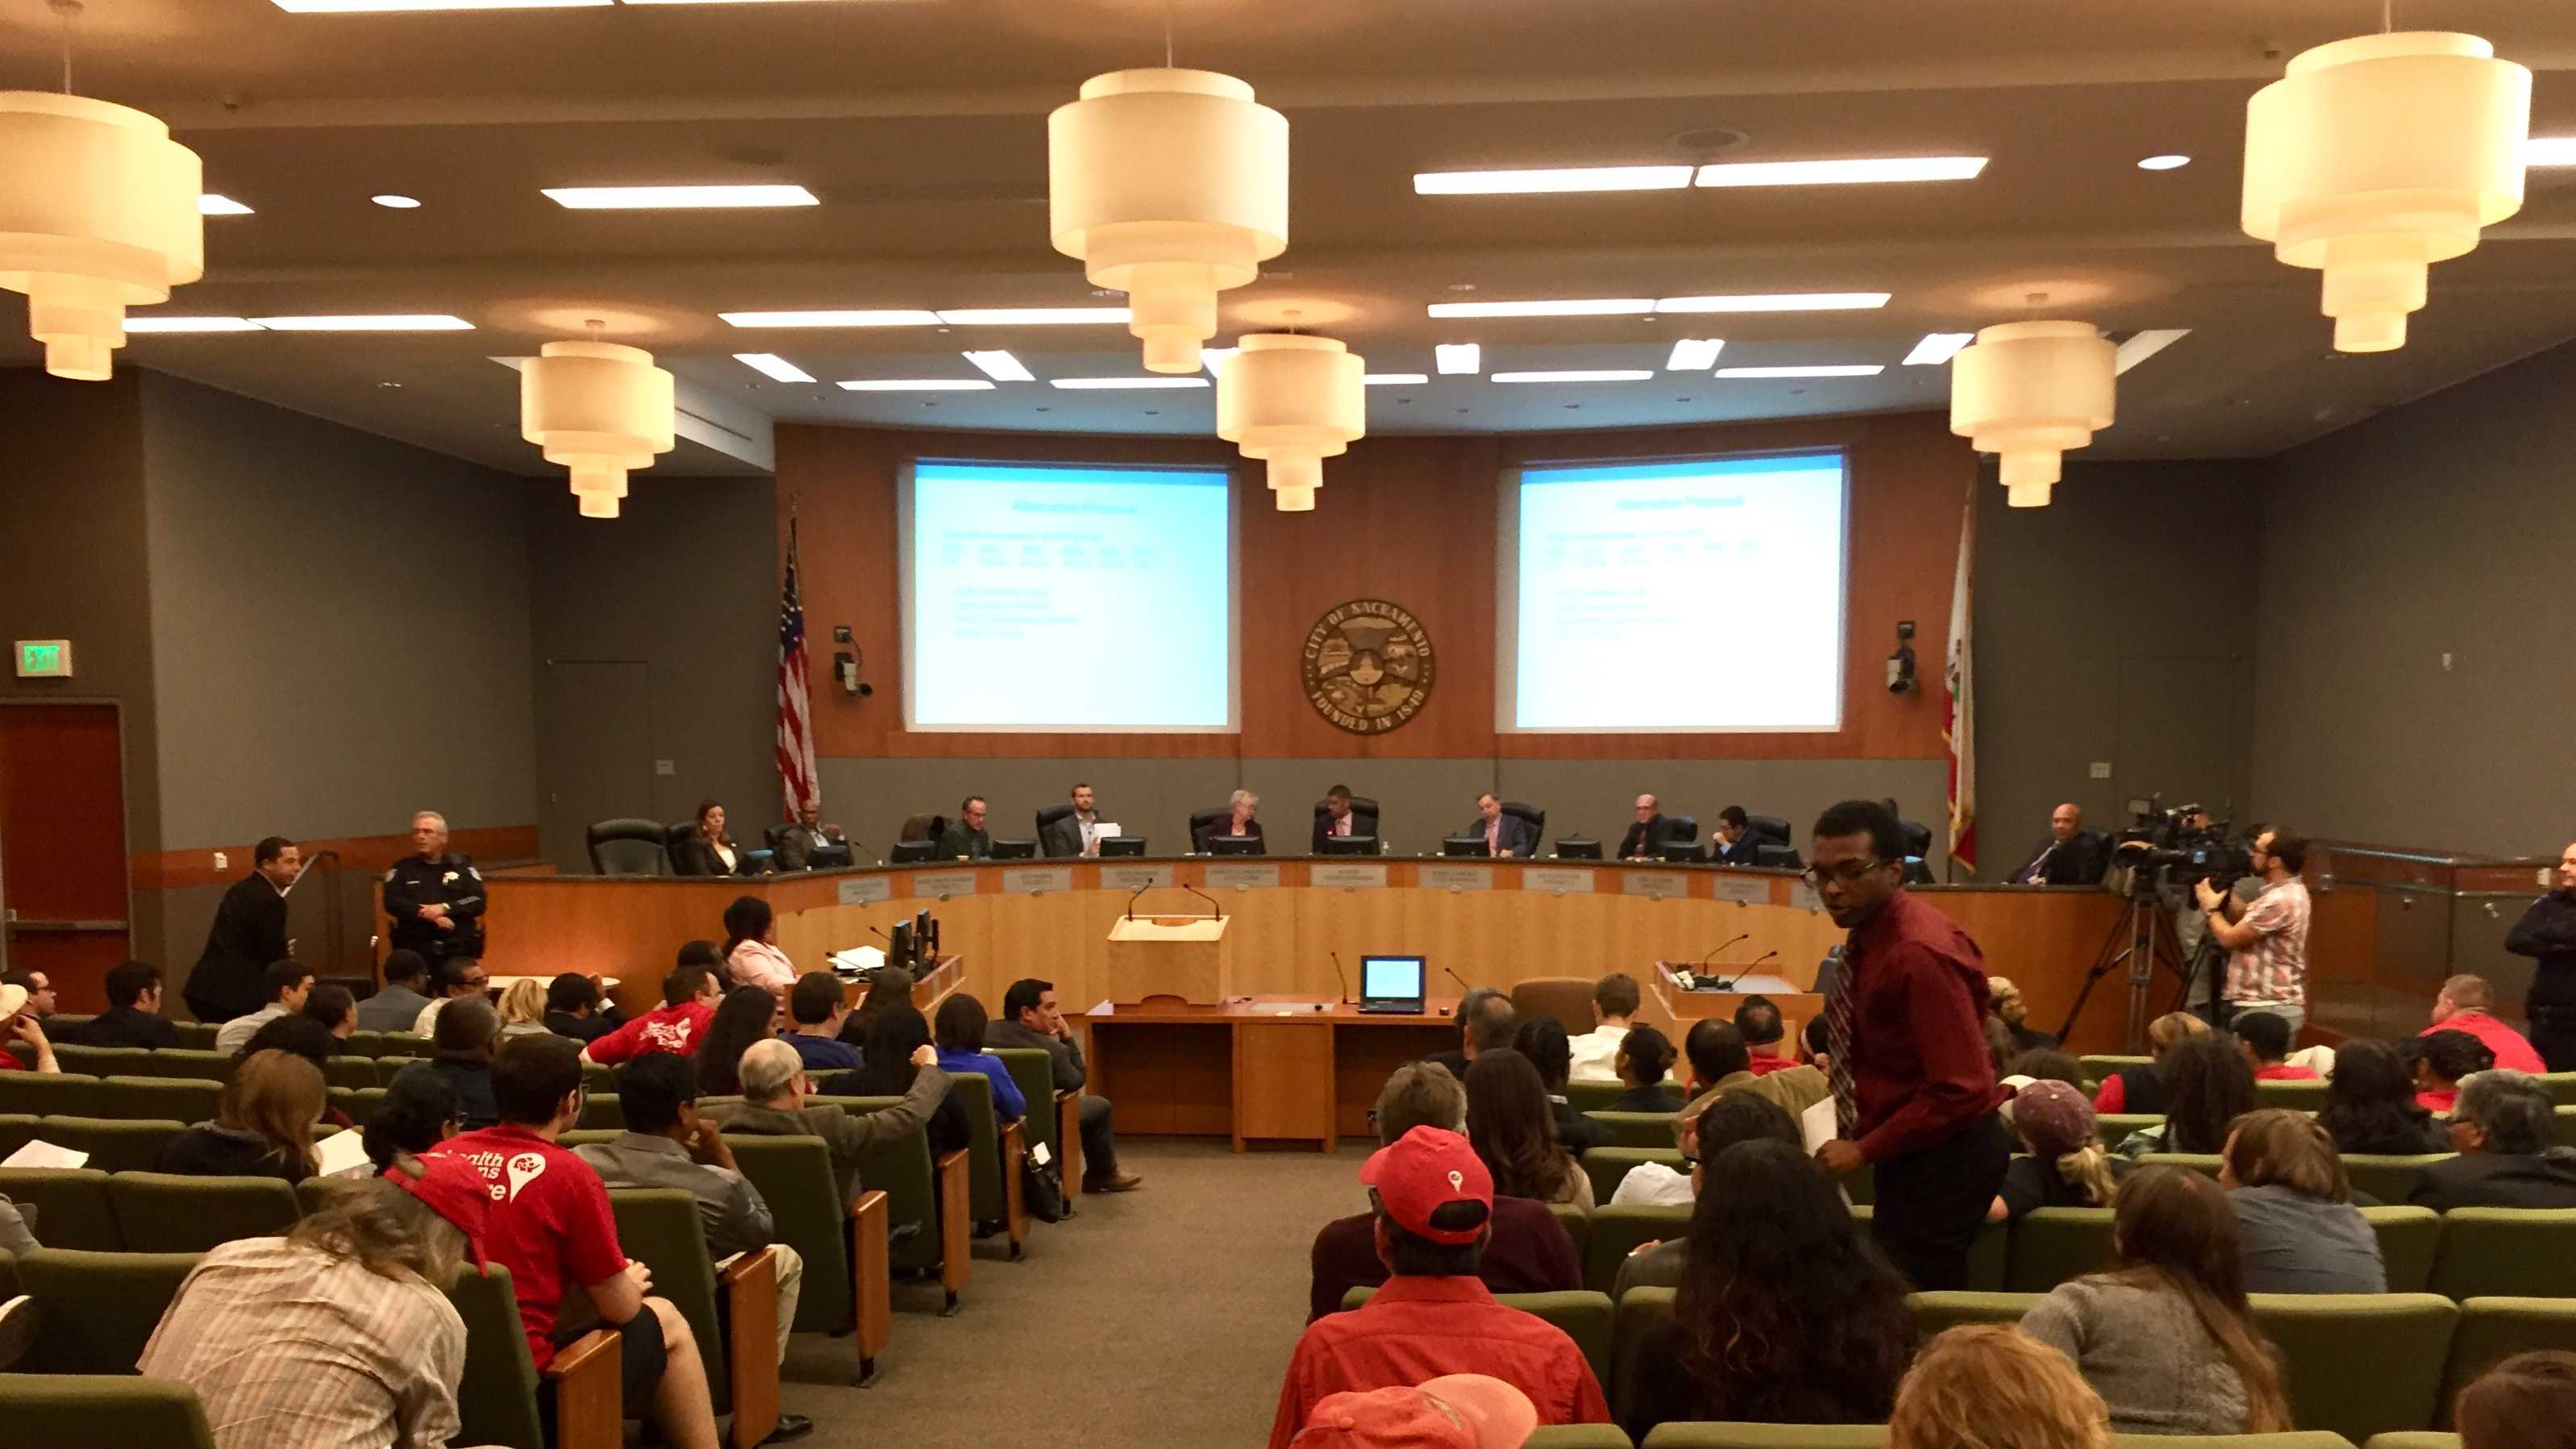 Crowd gathers at Sacramento City Hall on Tuesday, Oct. 27, 2015, for the vote on minimum wage. Council members voted 6-3 to approved increasing minimum wage to $12.50 by 2020.